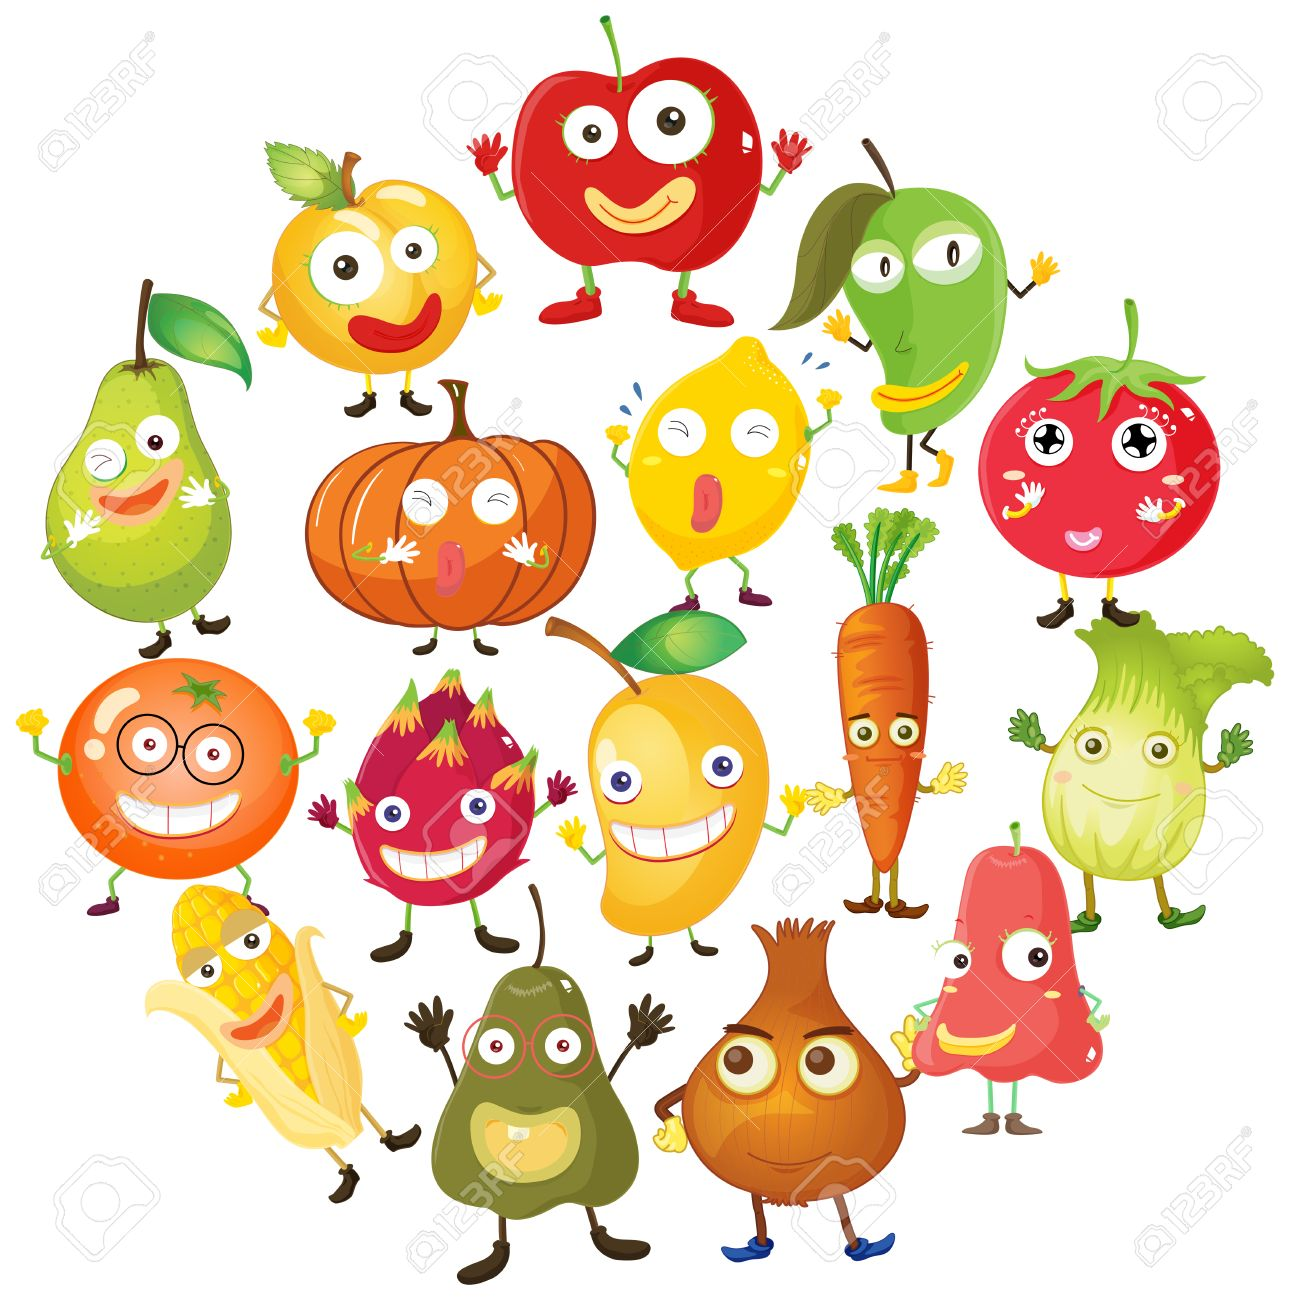 Image result for fruit faces clipart